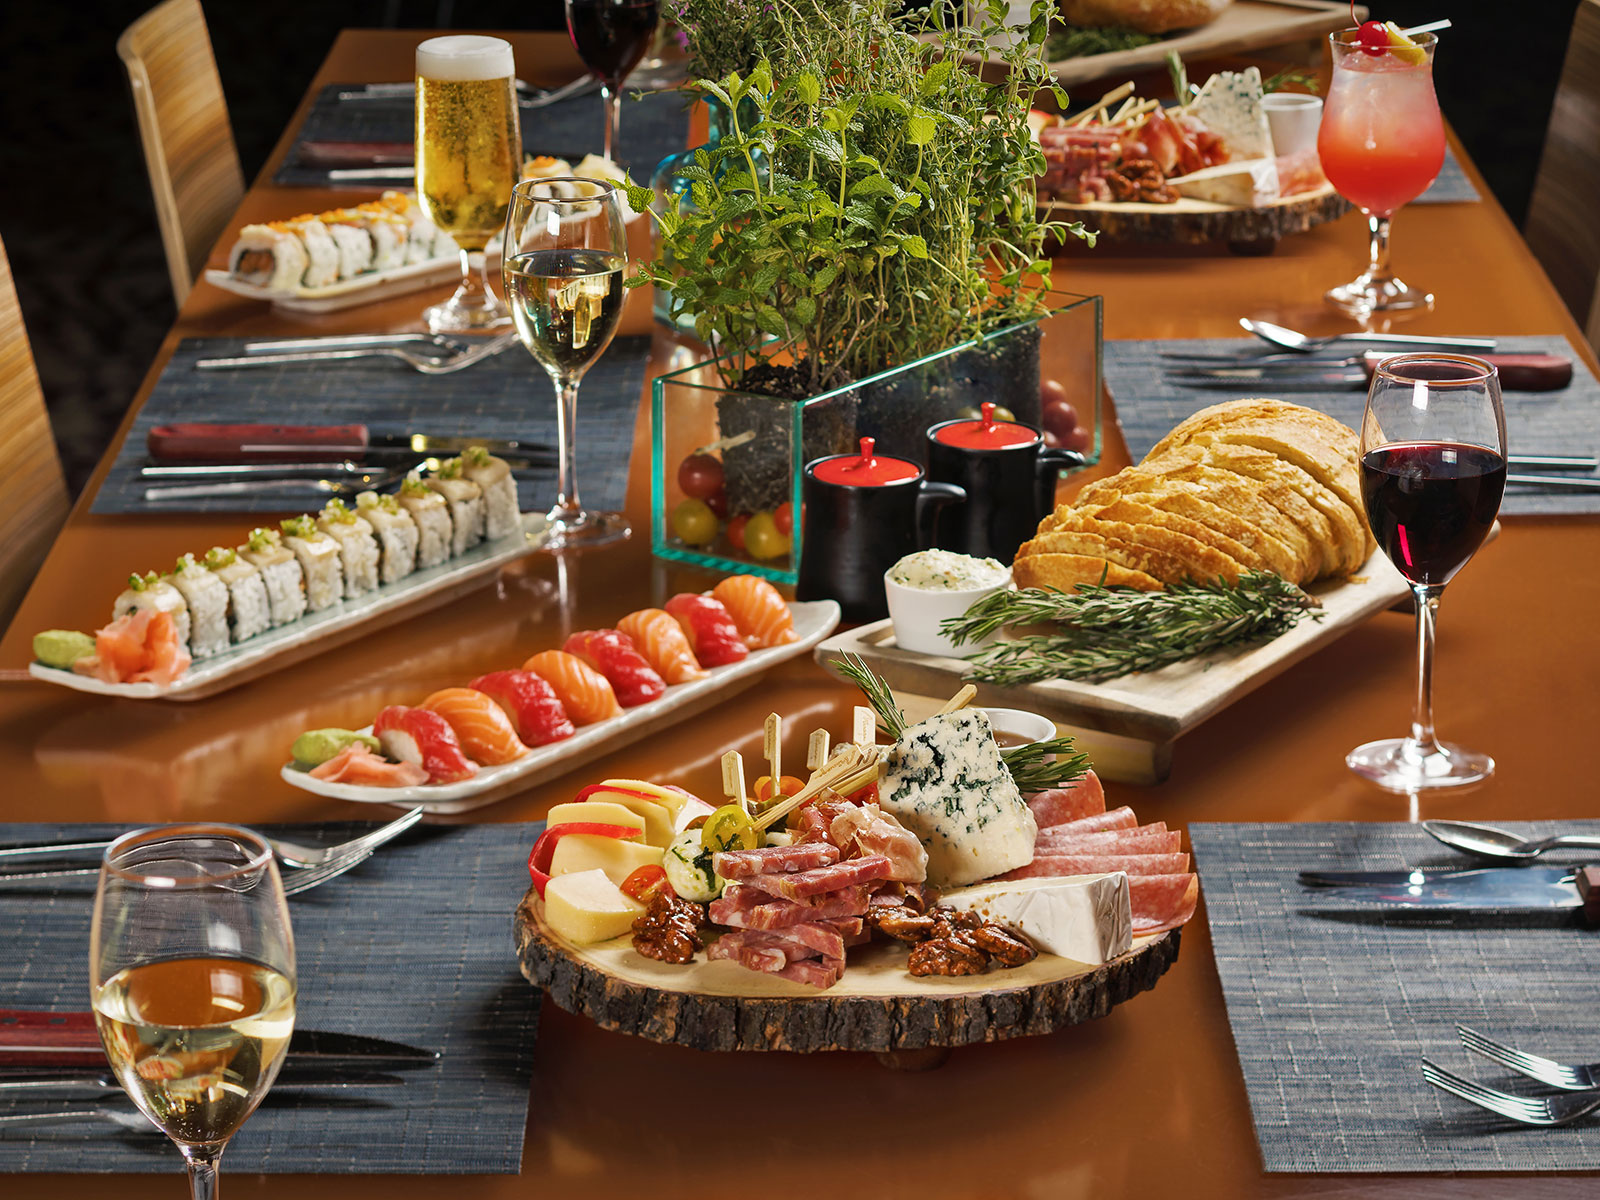 The Mirage Las Vegas Adds a Chef's Table to Its Buffet